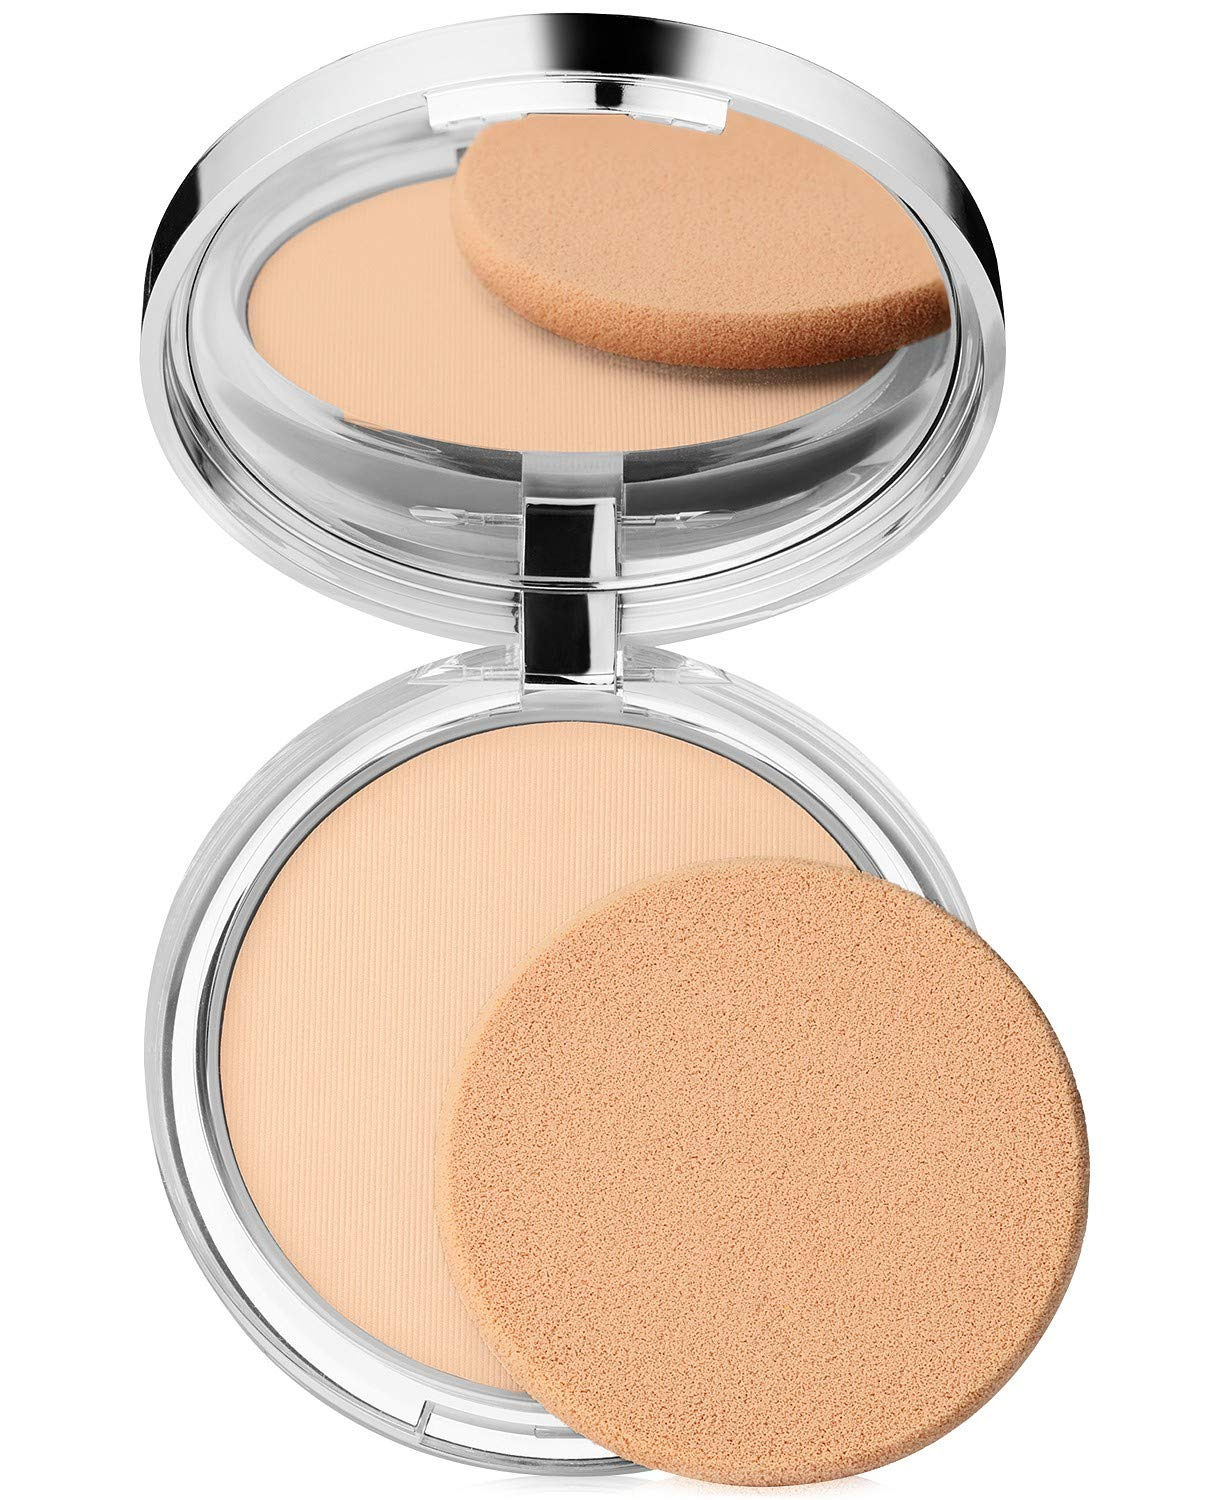 Stay-Matte New Clinique Sheer Pressed Powder, 0.27 oz / 7.6 g, 02 Stay Neutral MF by Clinique